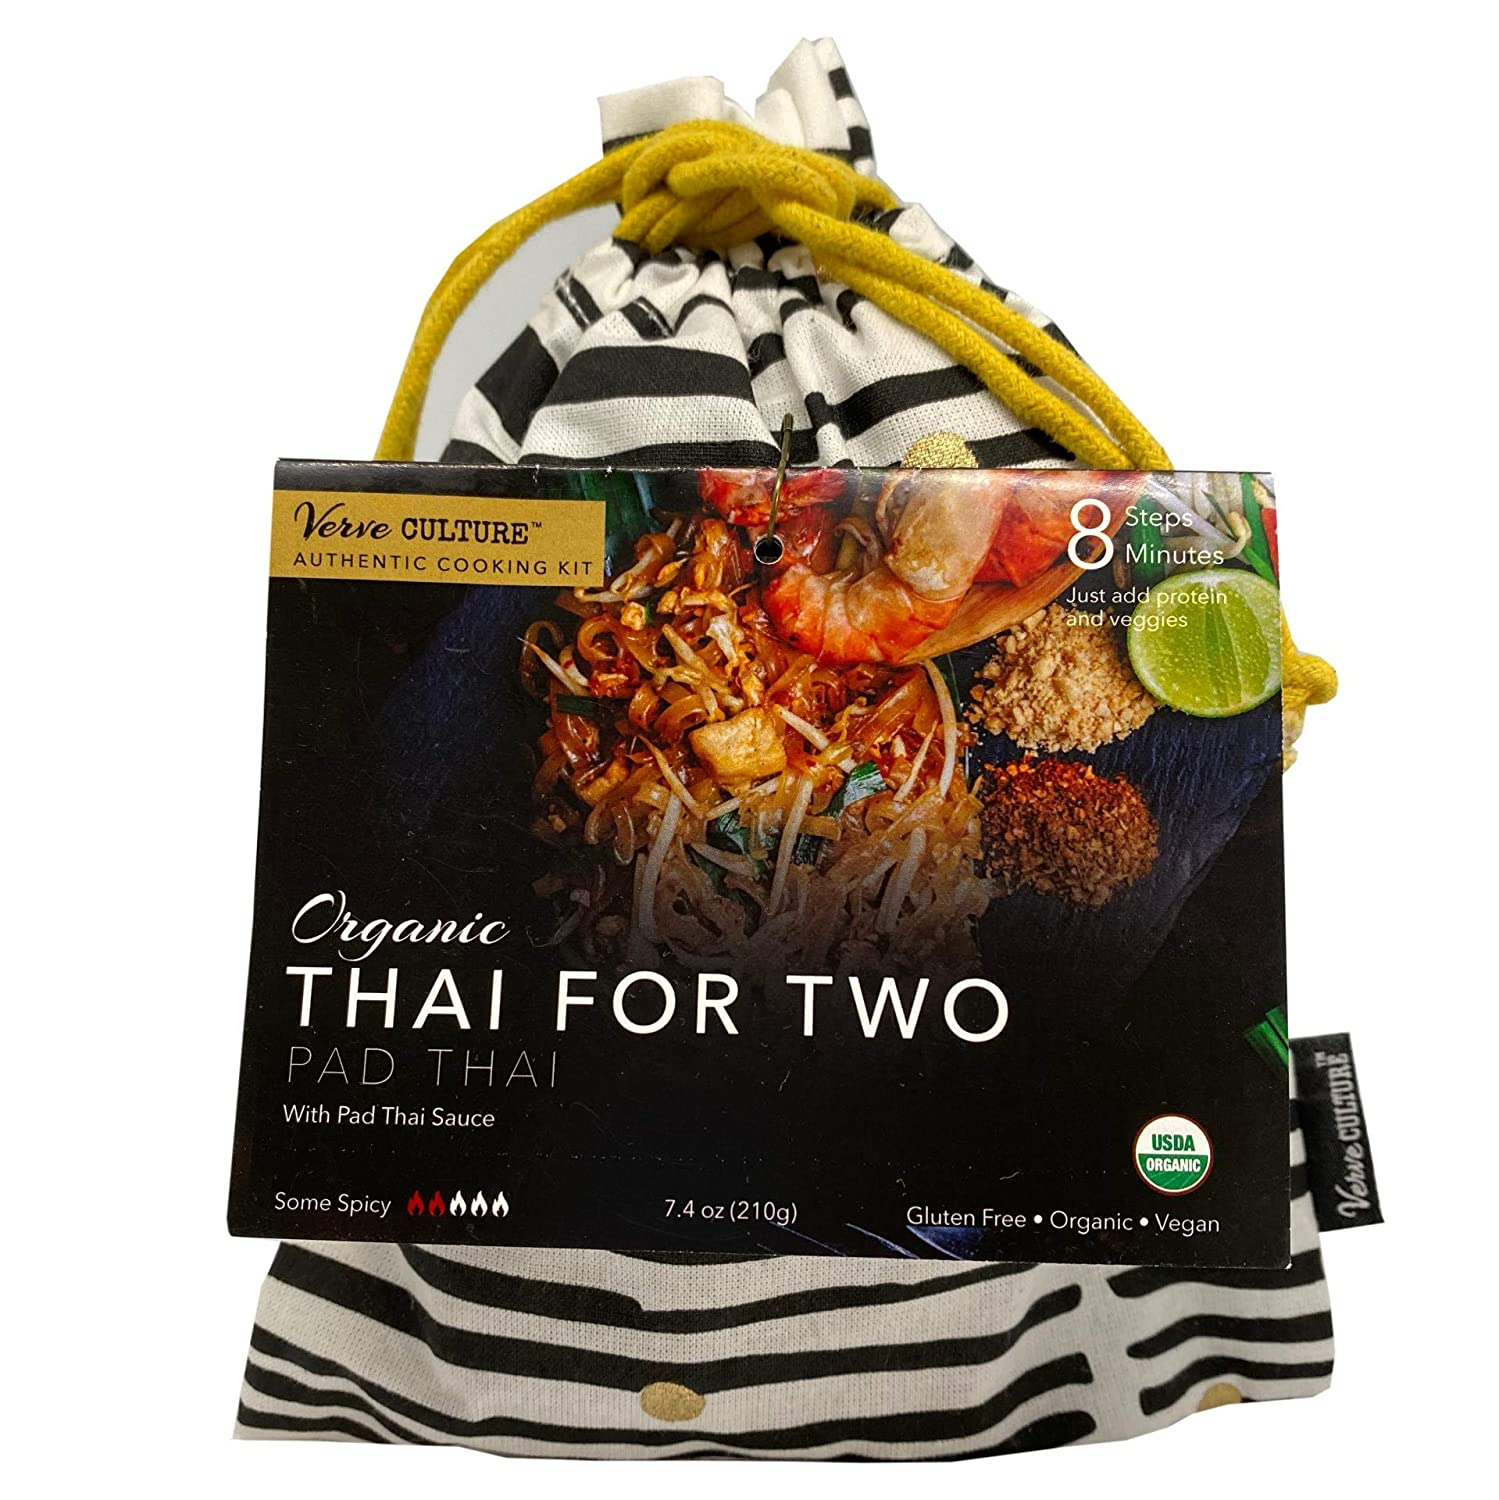 Verve Culture Thai for Two - Organic Pad Thai Noodles with Pad Thai Sauce | Authentic Thai Cooking Kit | Gluten-Free, Vegan